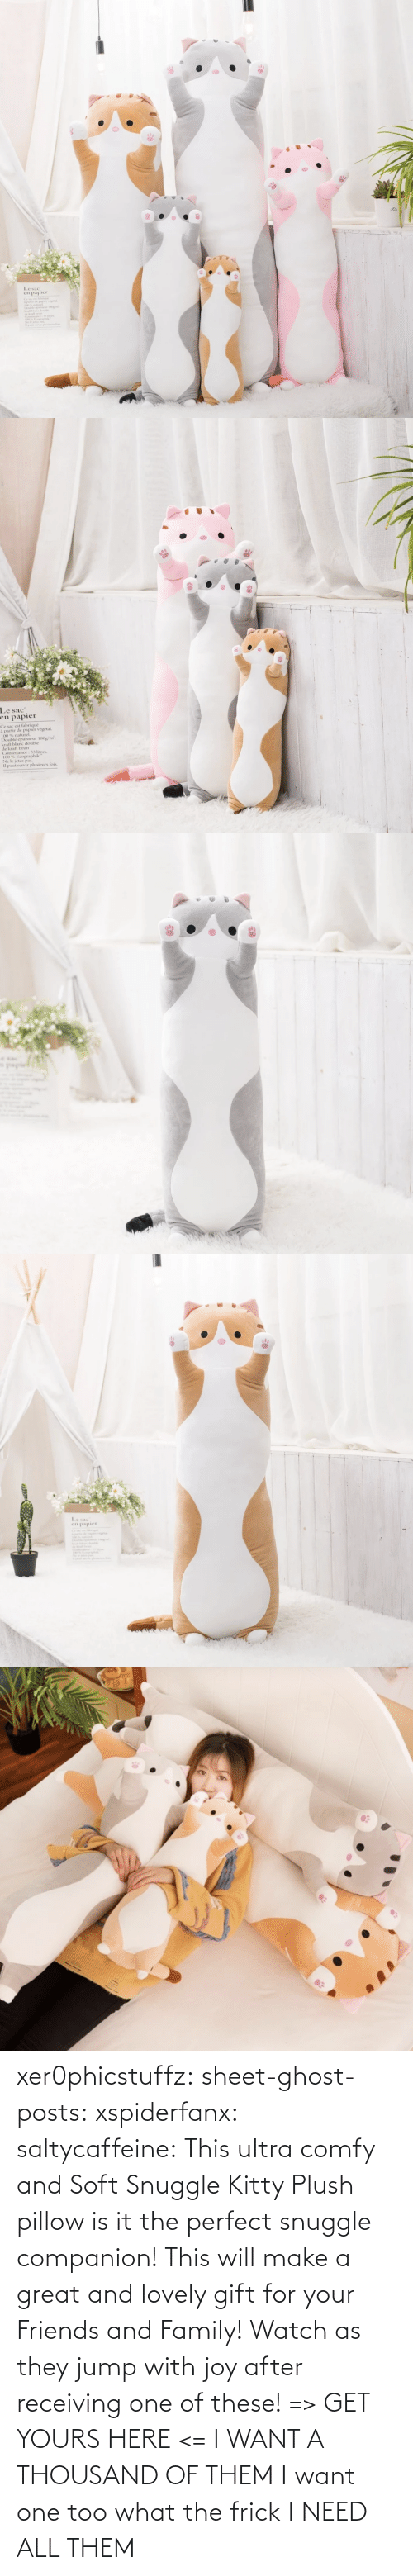 I Want: xer0phicstuffz:  sheet-ghost-posts: xspiderfanx:  saltycaffeine:  This ultra comfy and Soft Snuggle Kitty Plush pillow is it the perfect snuggle companion! This will make a great and lovely gift for your Friends and Family! Watch as they jump with joy after receiving one of these! => GET YOURS HERE <=    I WANT A THOUSAND OF THEM  I want one too what the frick    I NEED ALL THEM